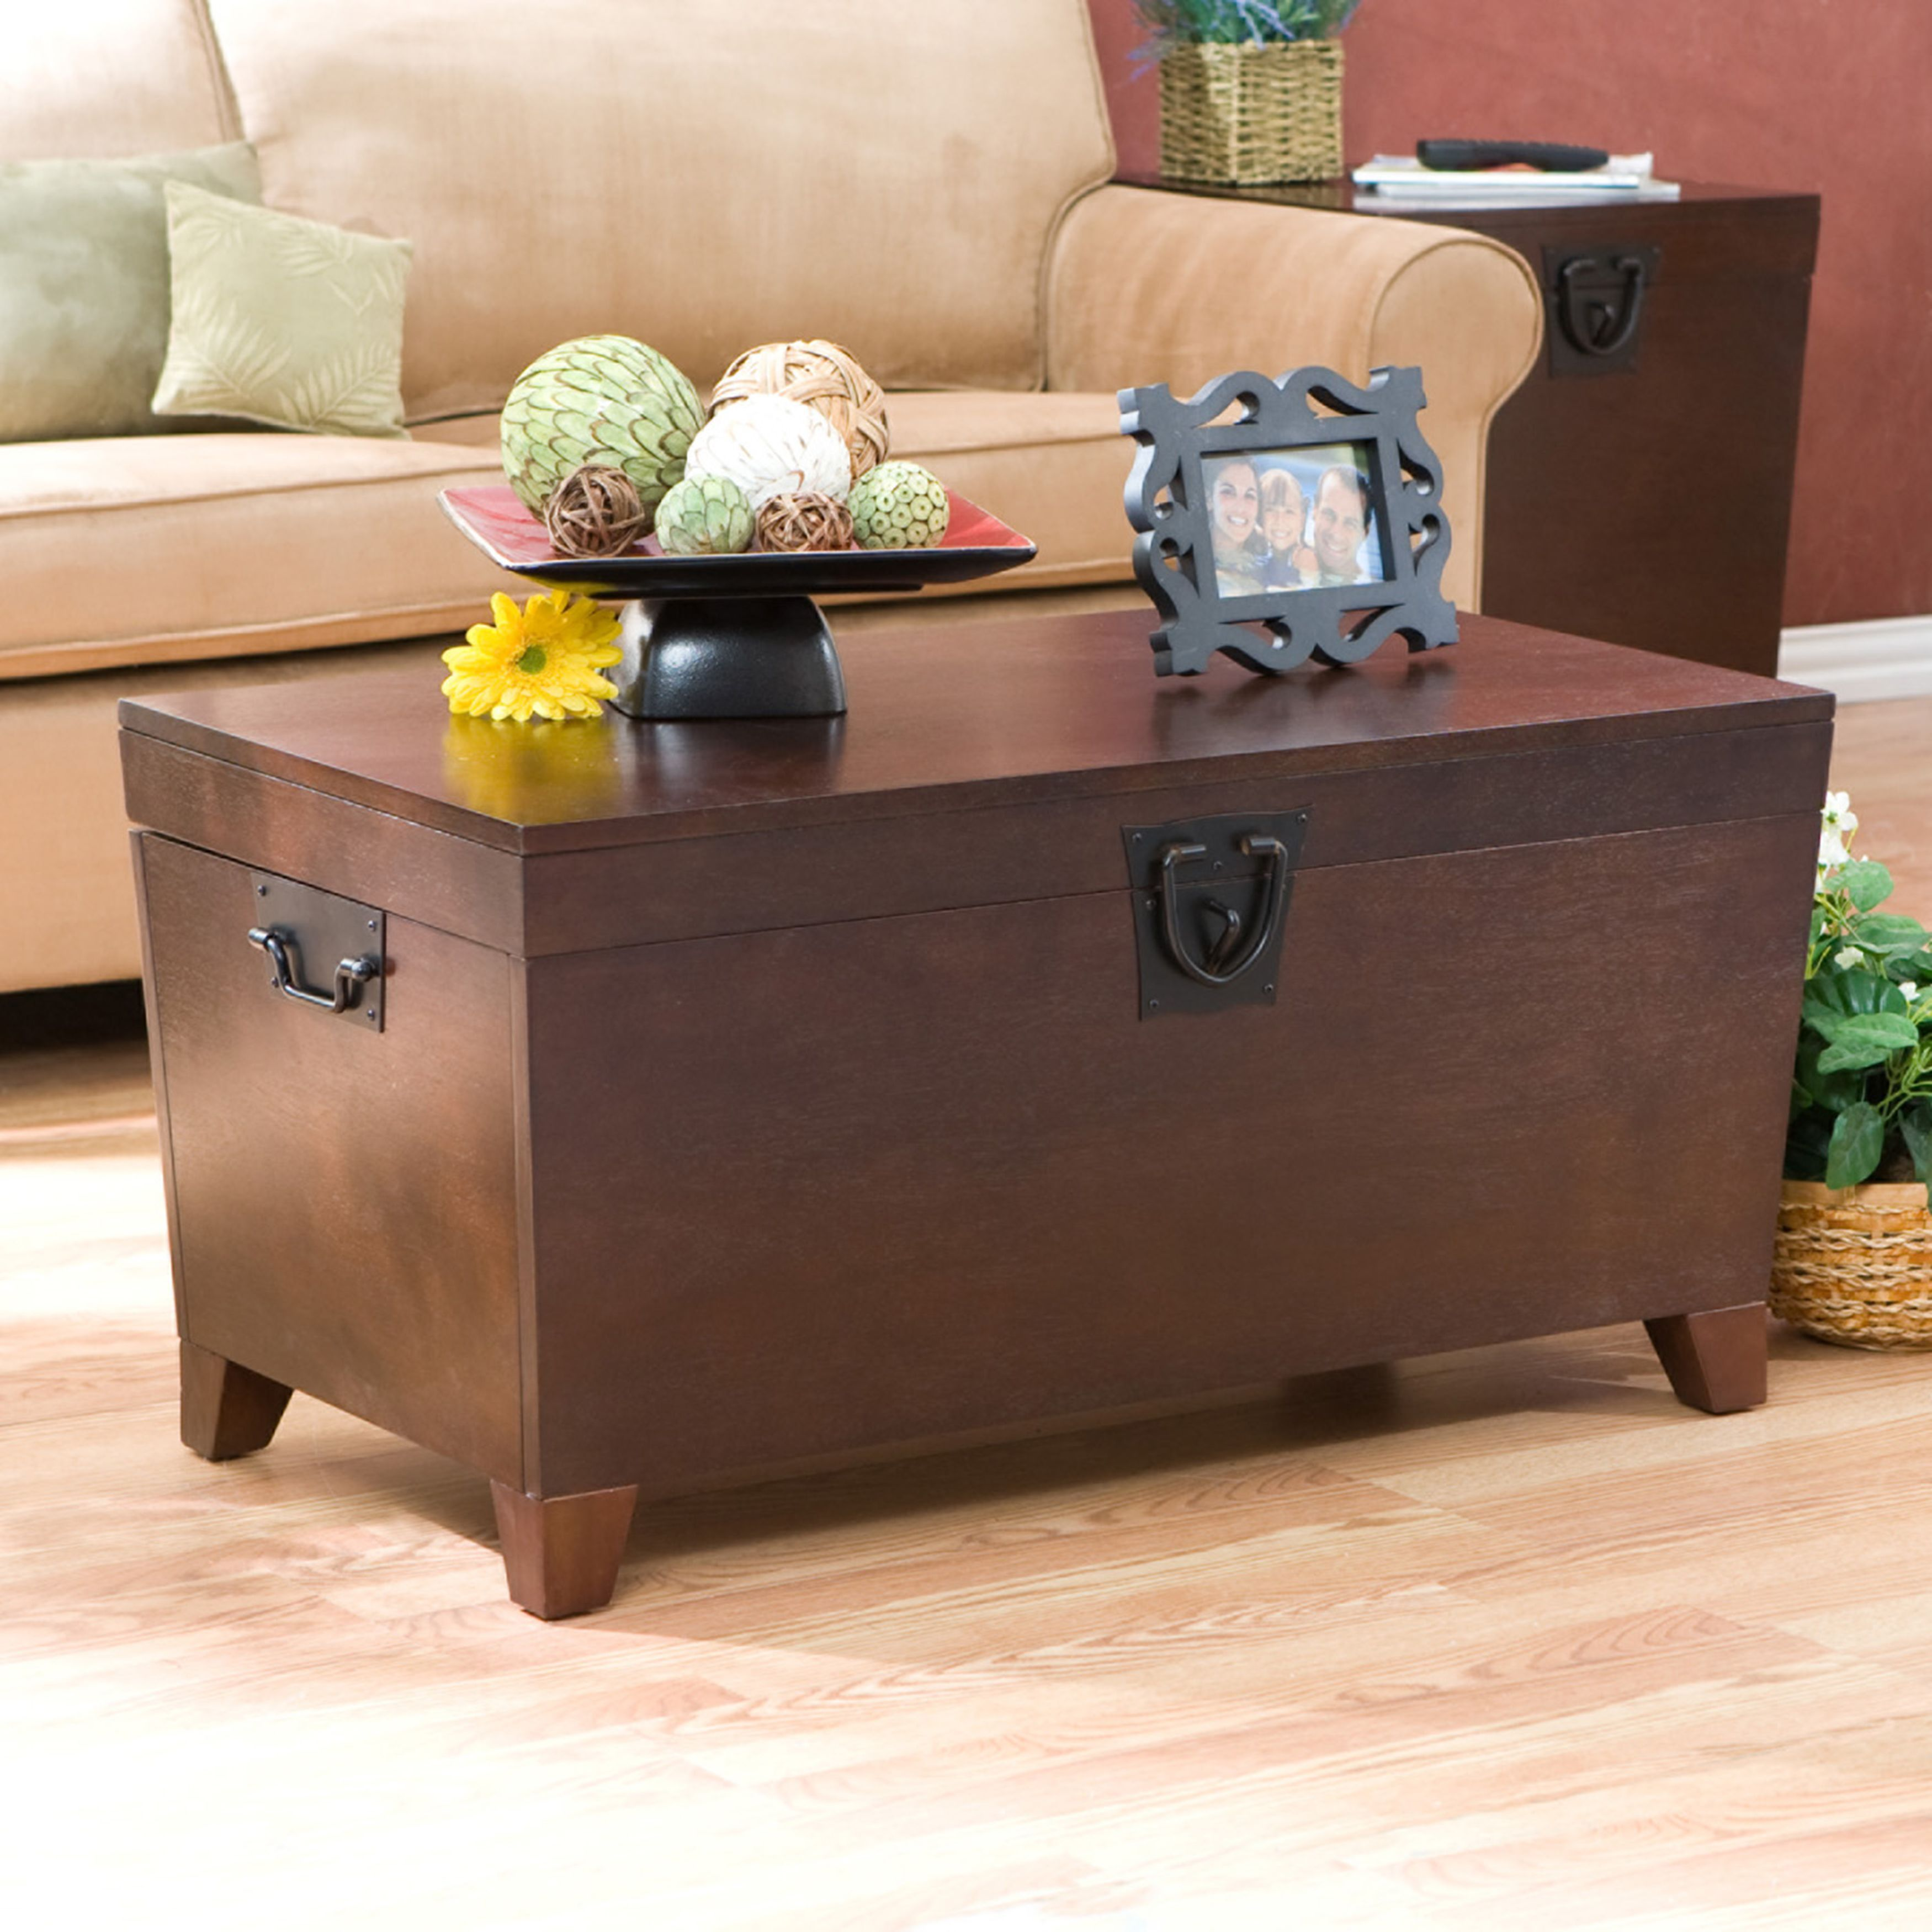 Modernize your decor with this wood trunk cocktail table